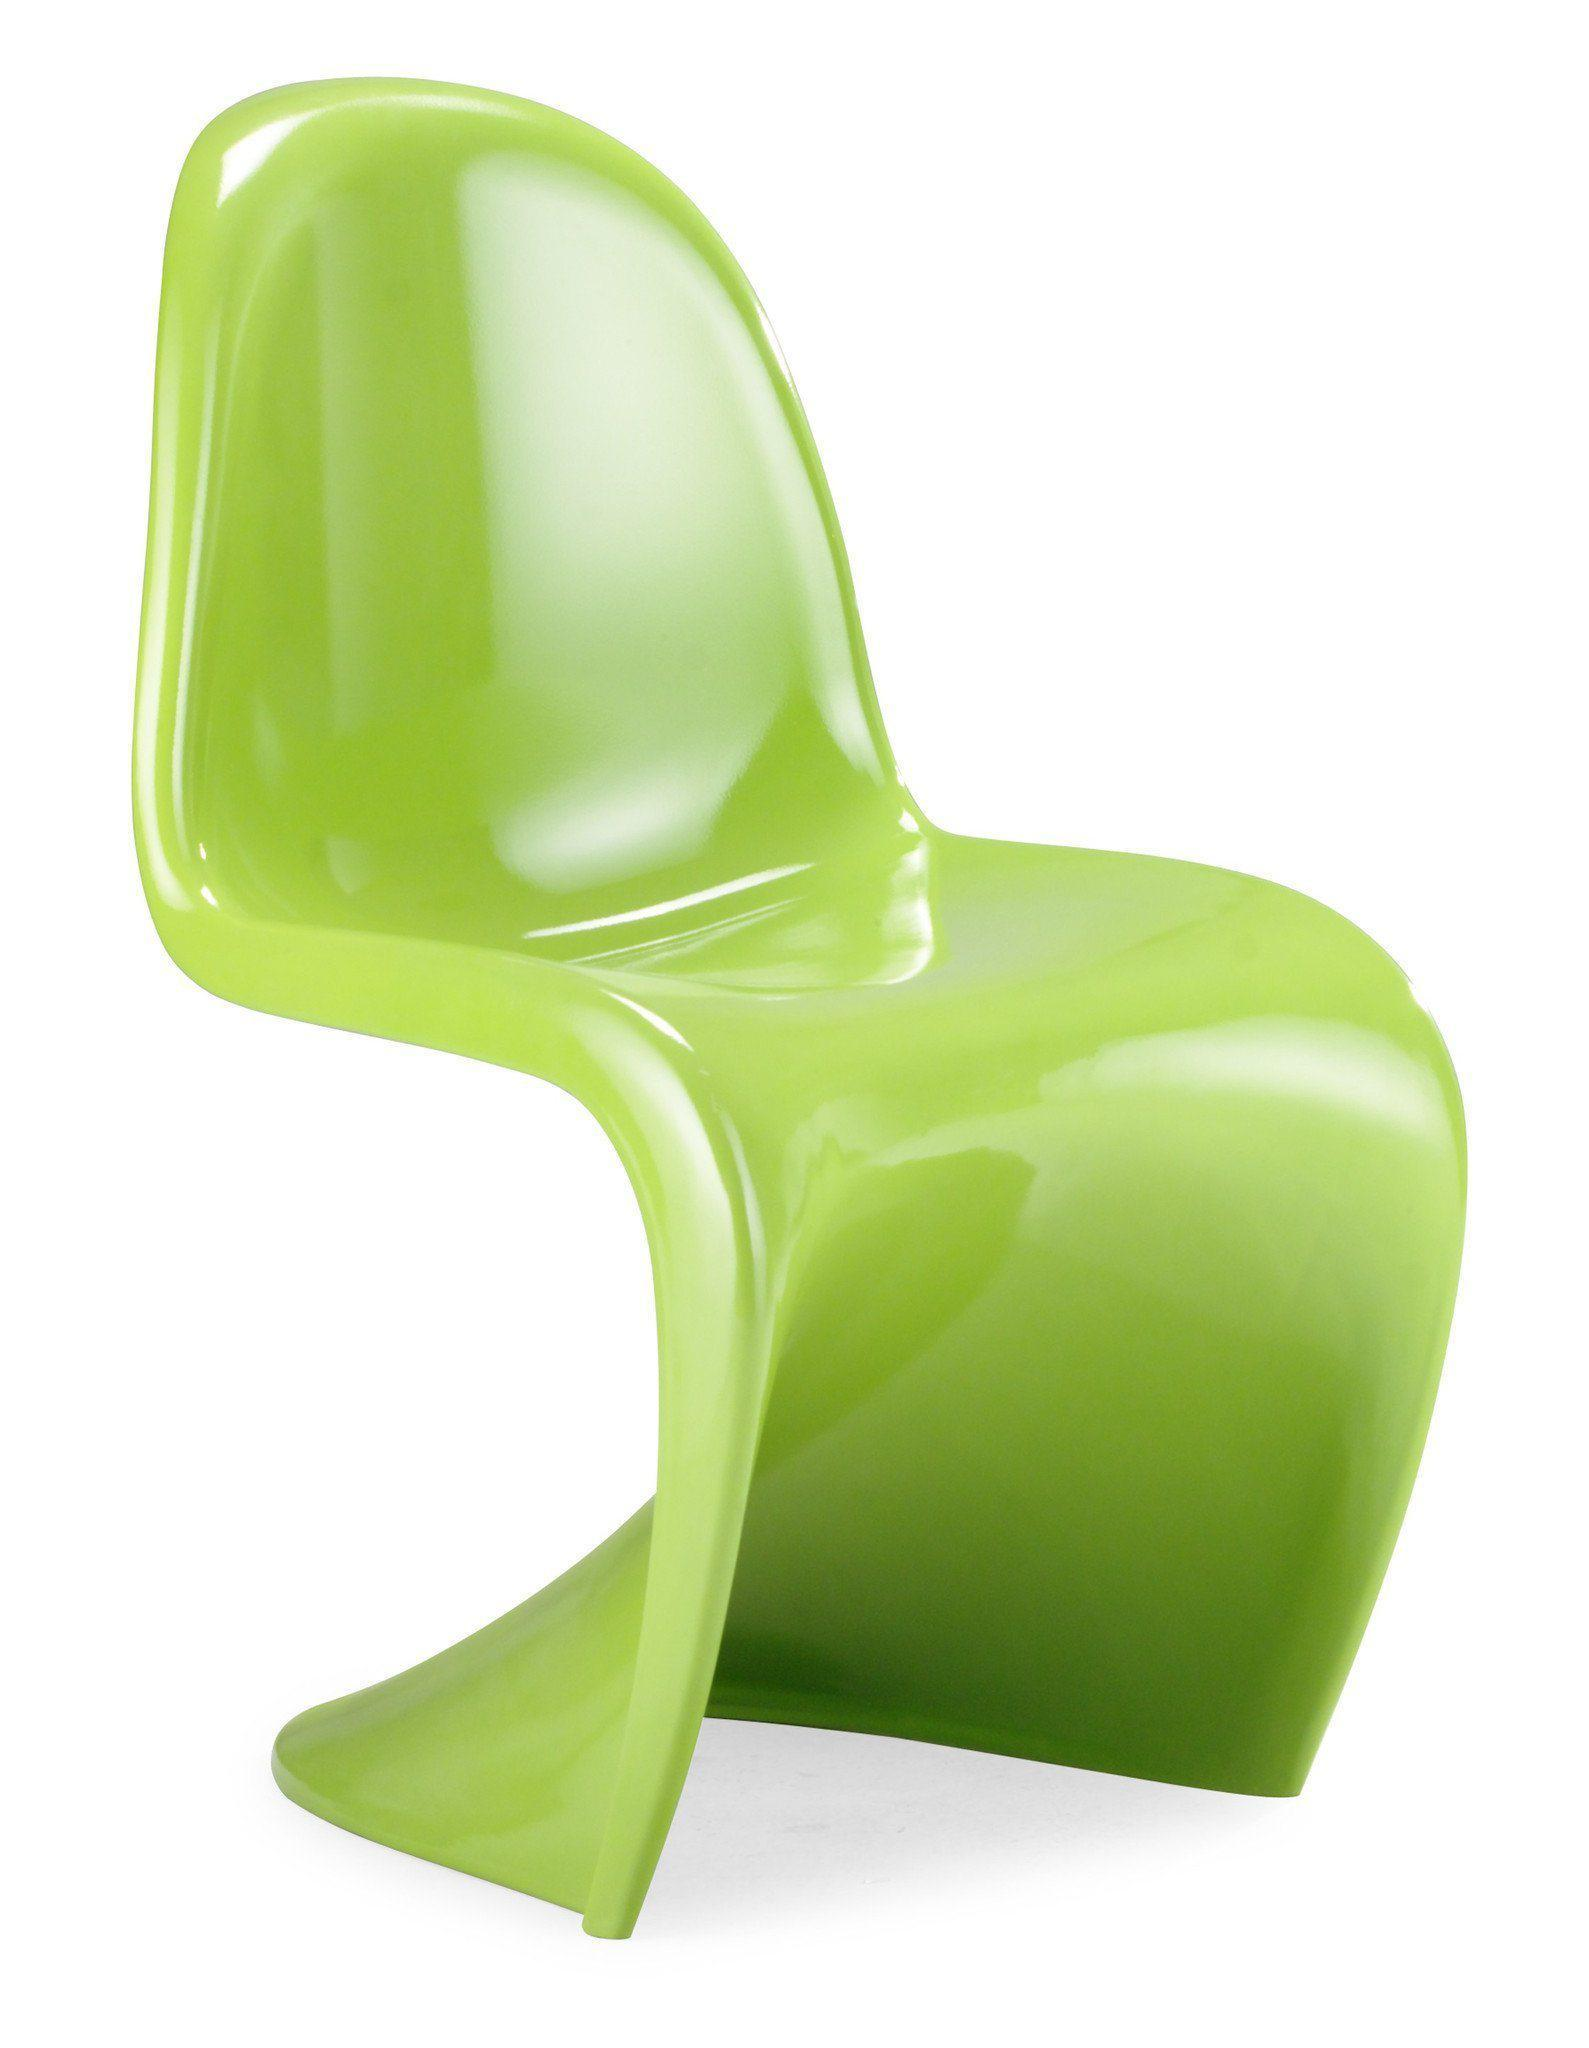 verner panton chair replica esque